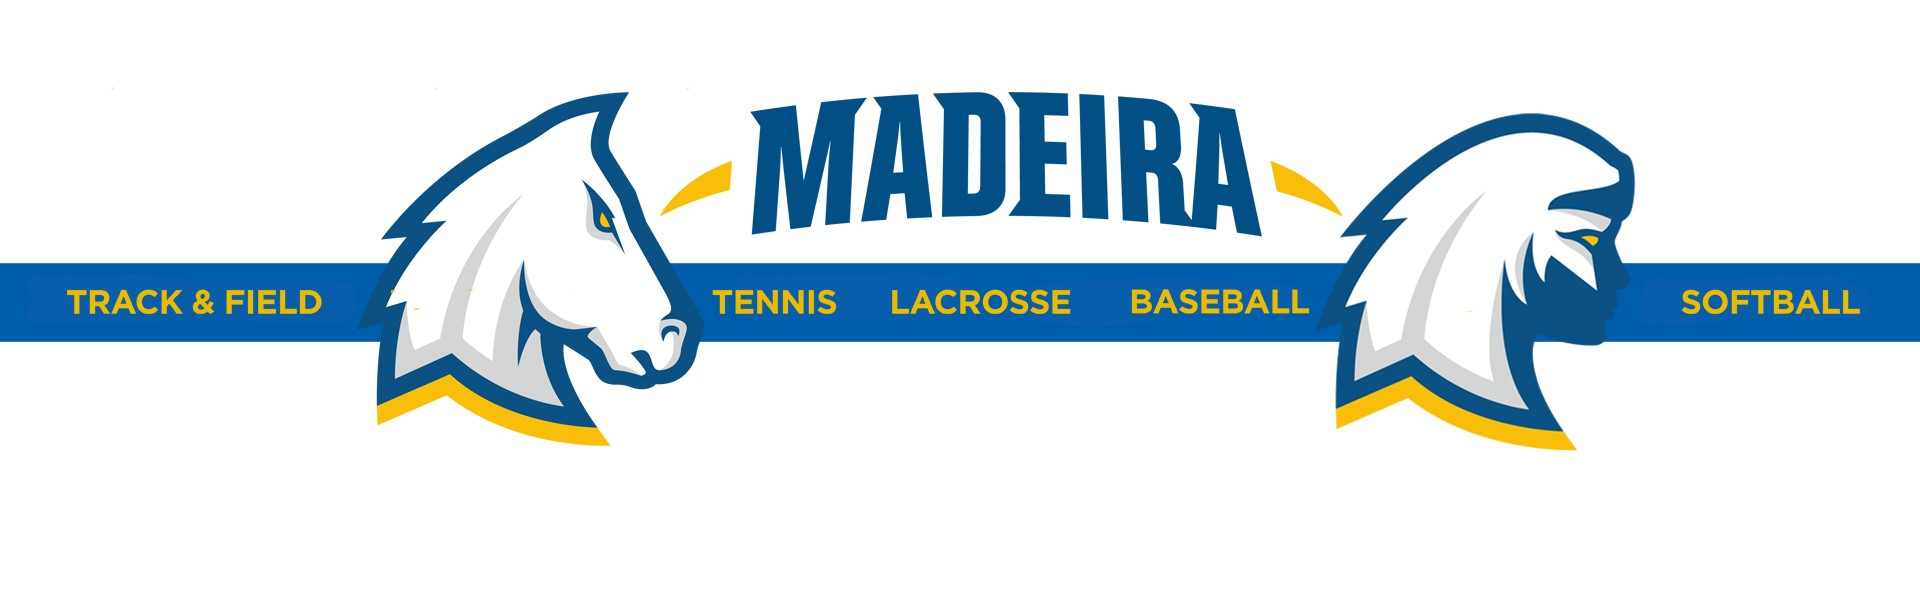 Come see our athletes in action! All spring sport schedules are at oh.8to18.com/Madeira.